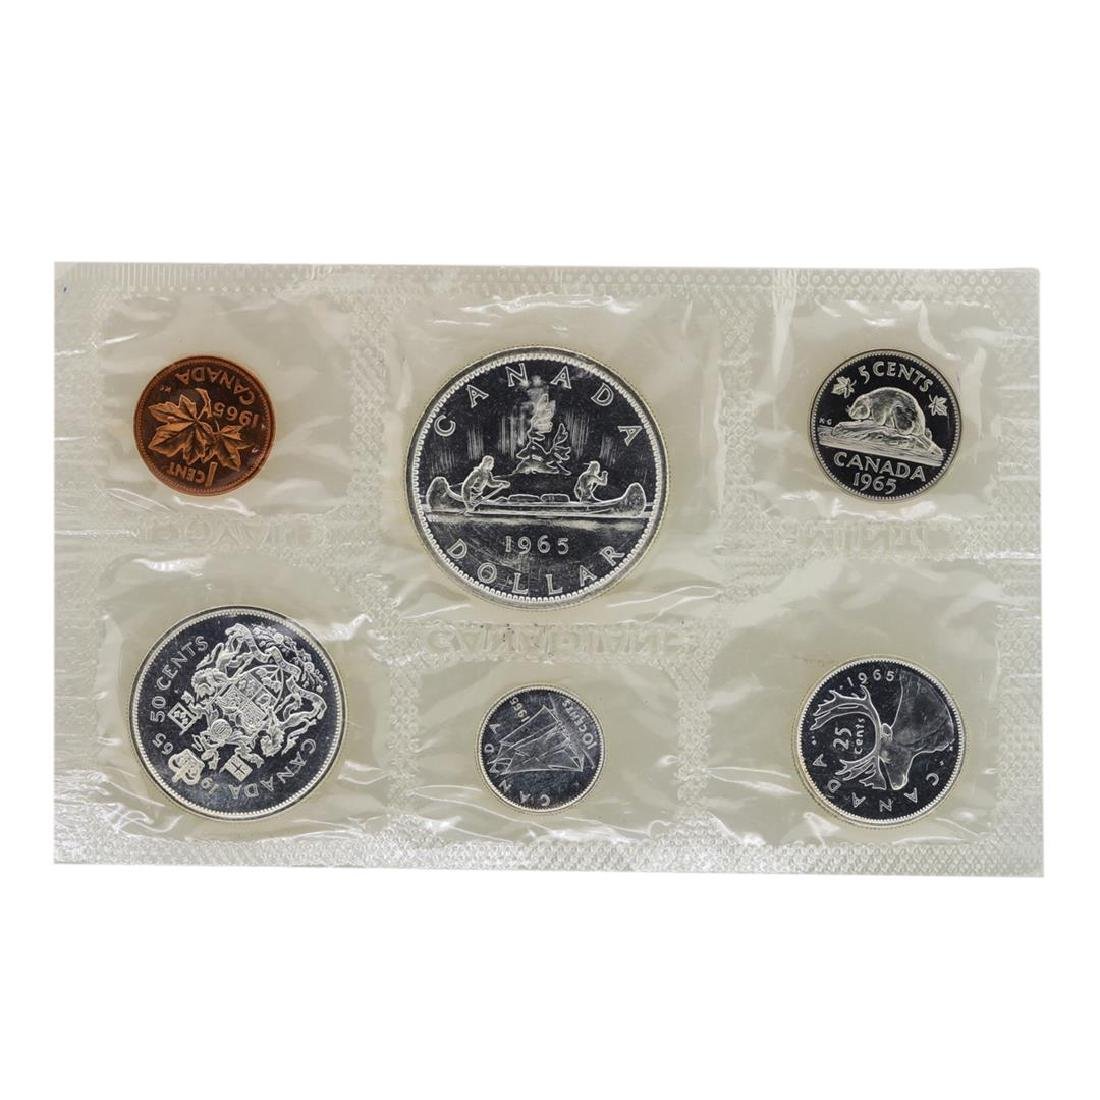 Lot of 1965-1967 Canada (6) Coin Proof Sets w/ Envelope - 3